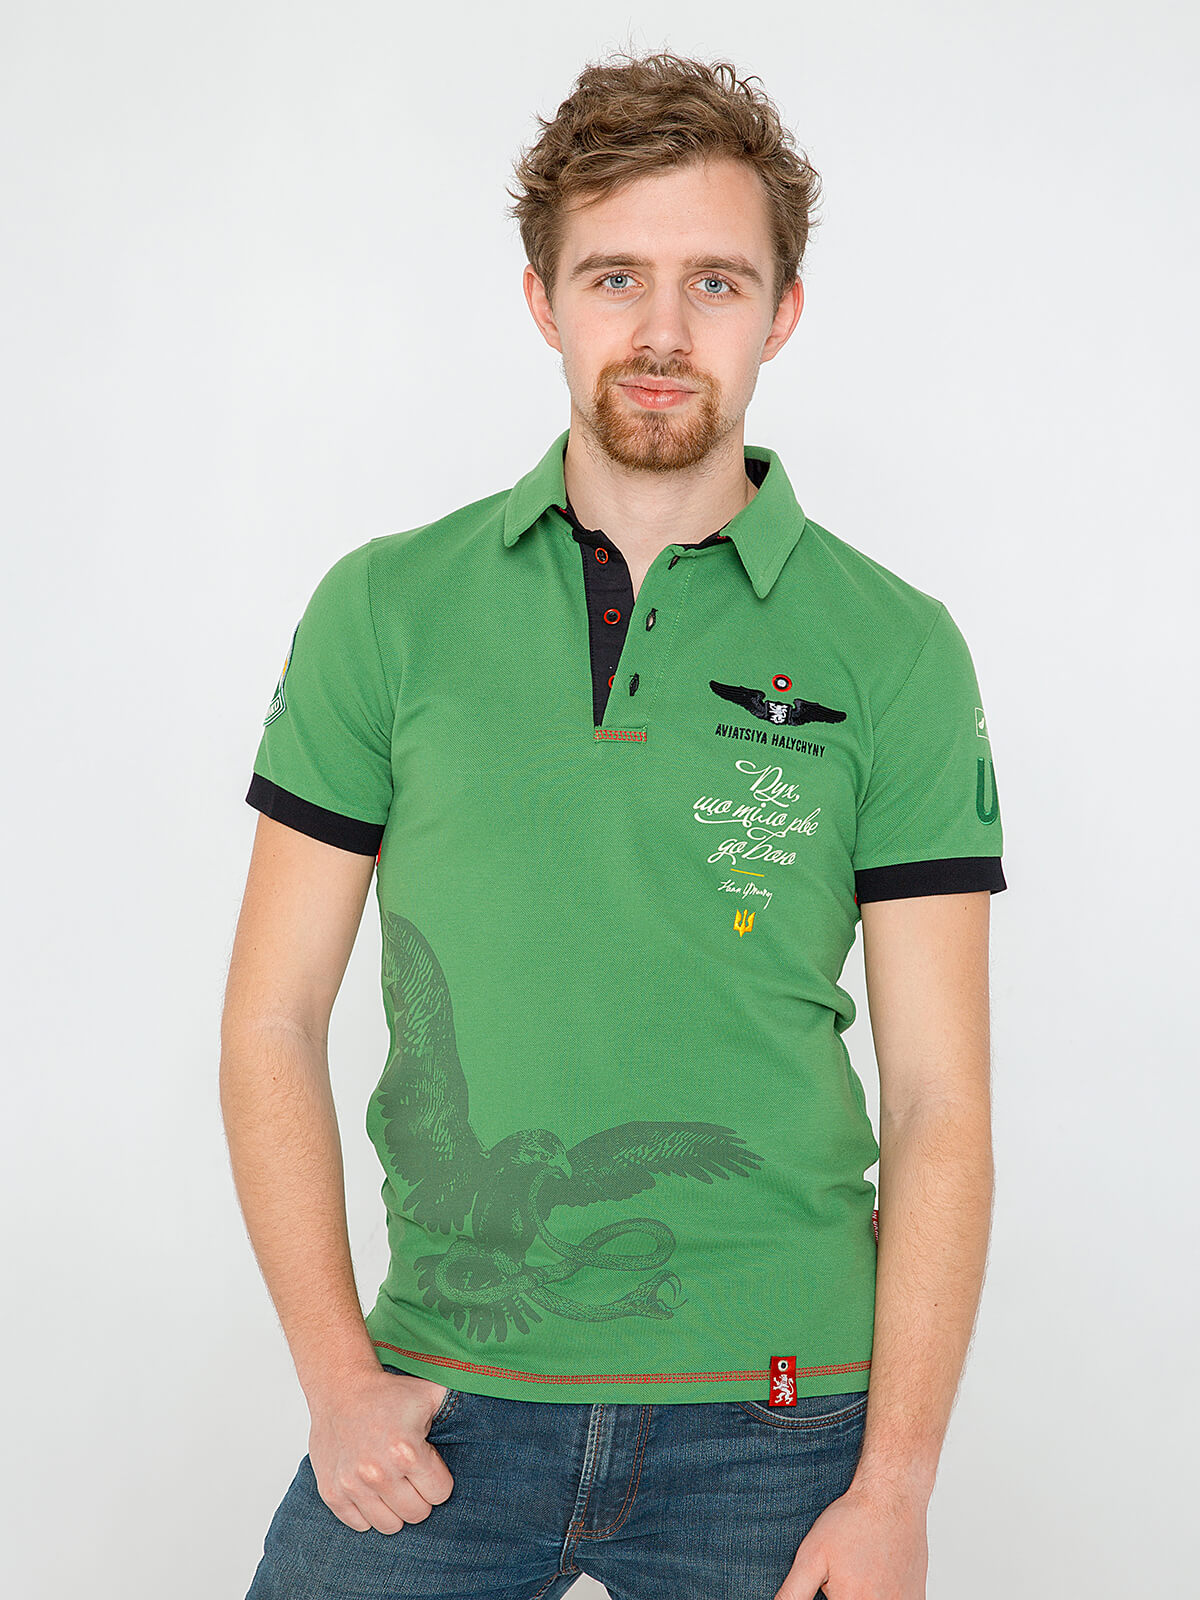 Men's Polo Shirt Ivan Franko. Color green. Pique fabric: 100% cotton.